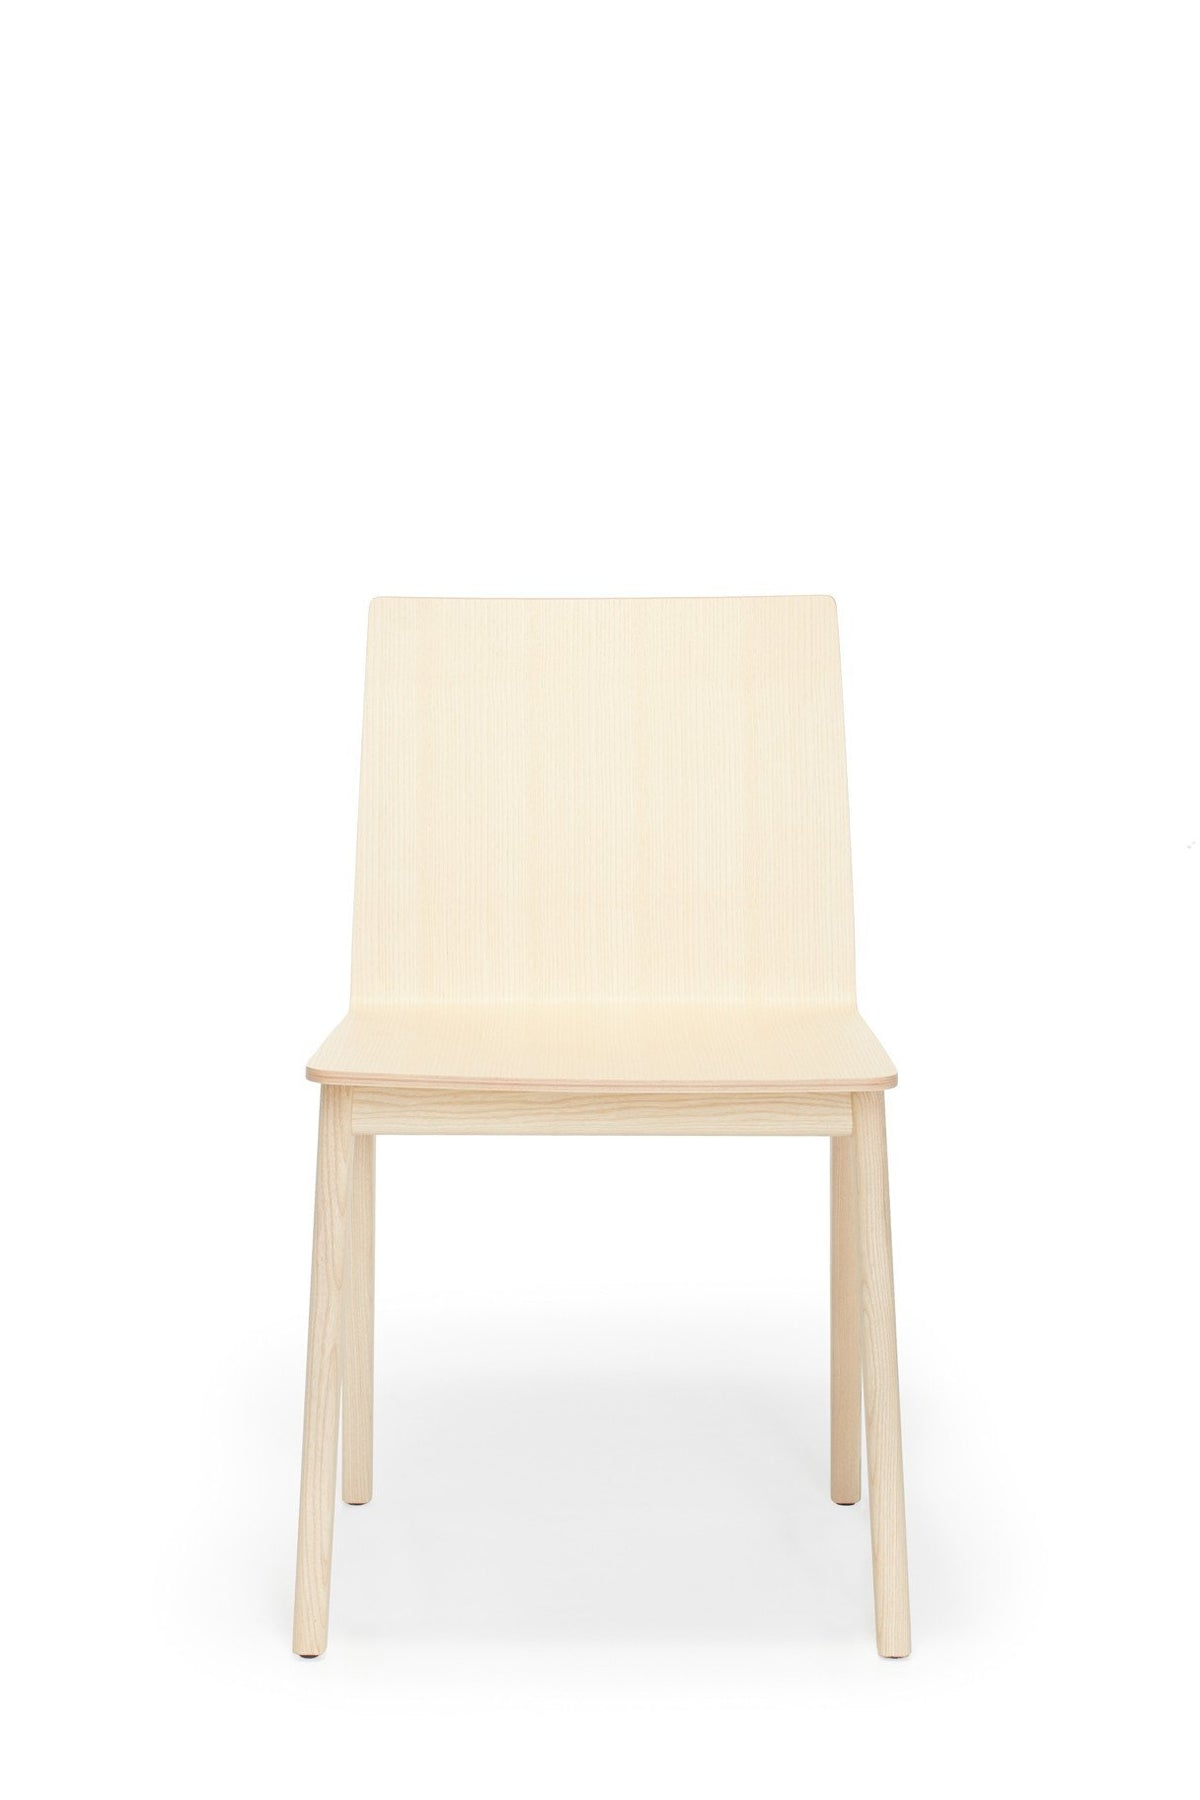 Osaka 2810 Side Chair-Pedrali-Contract Furniture Store